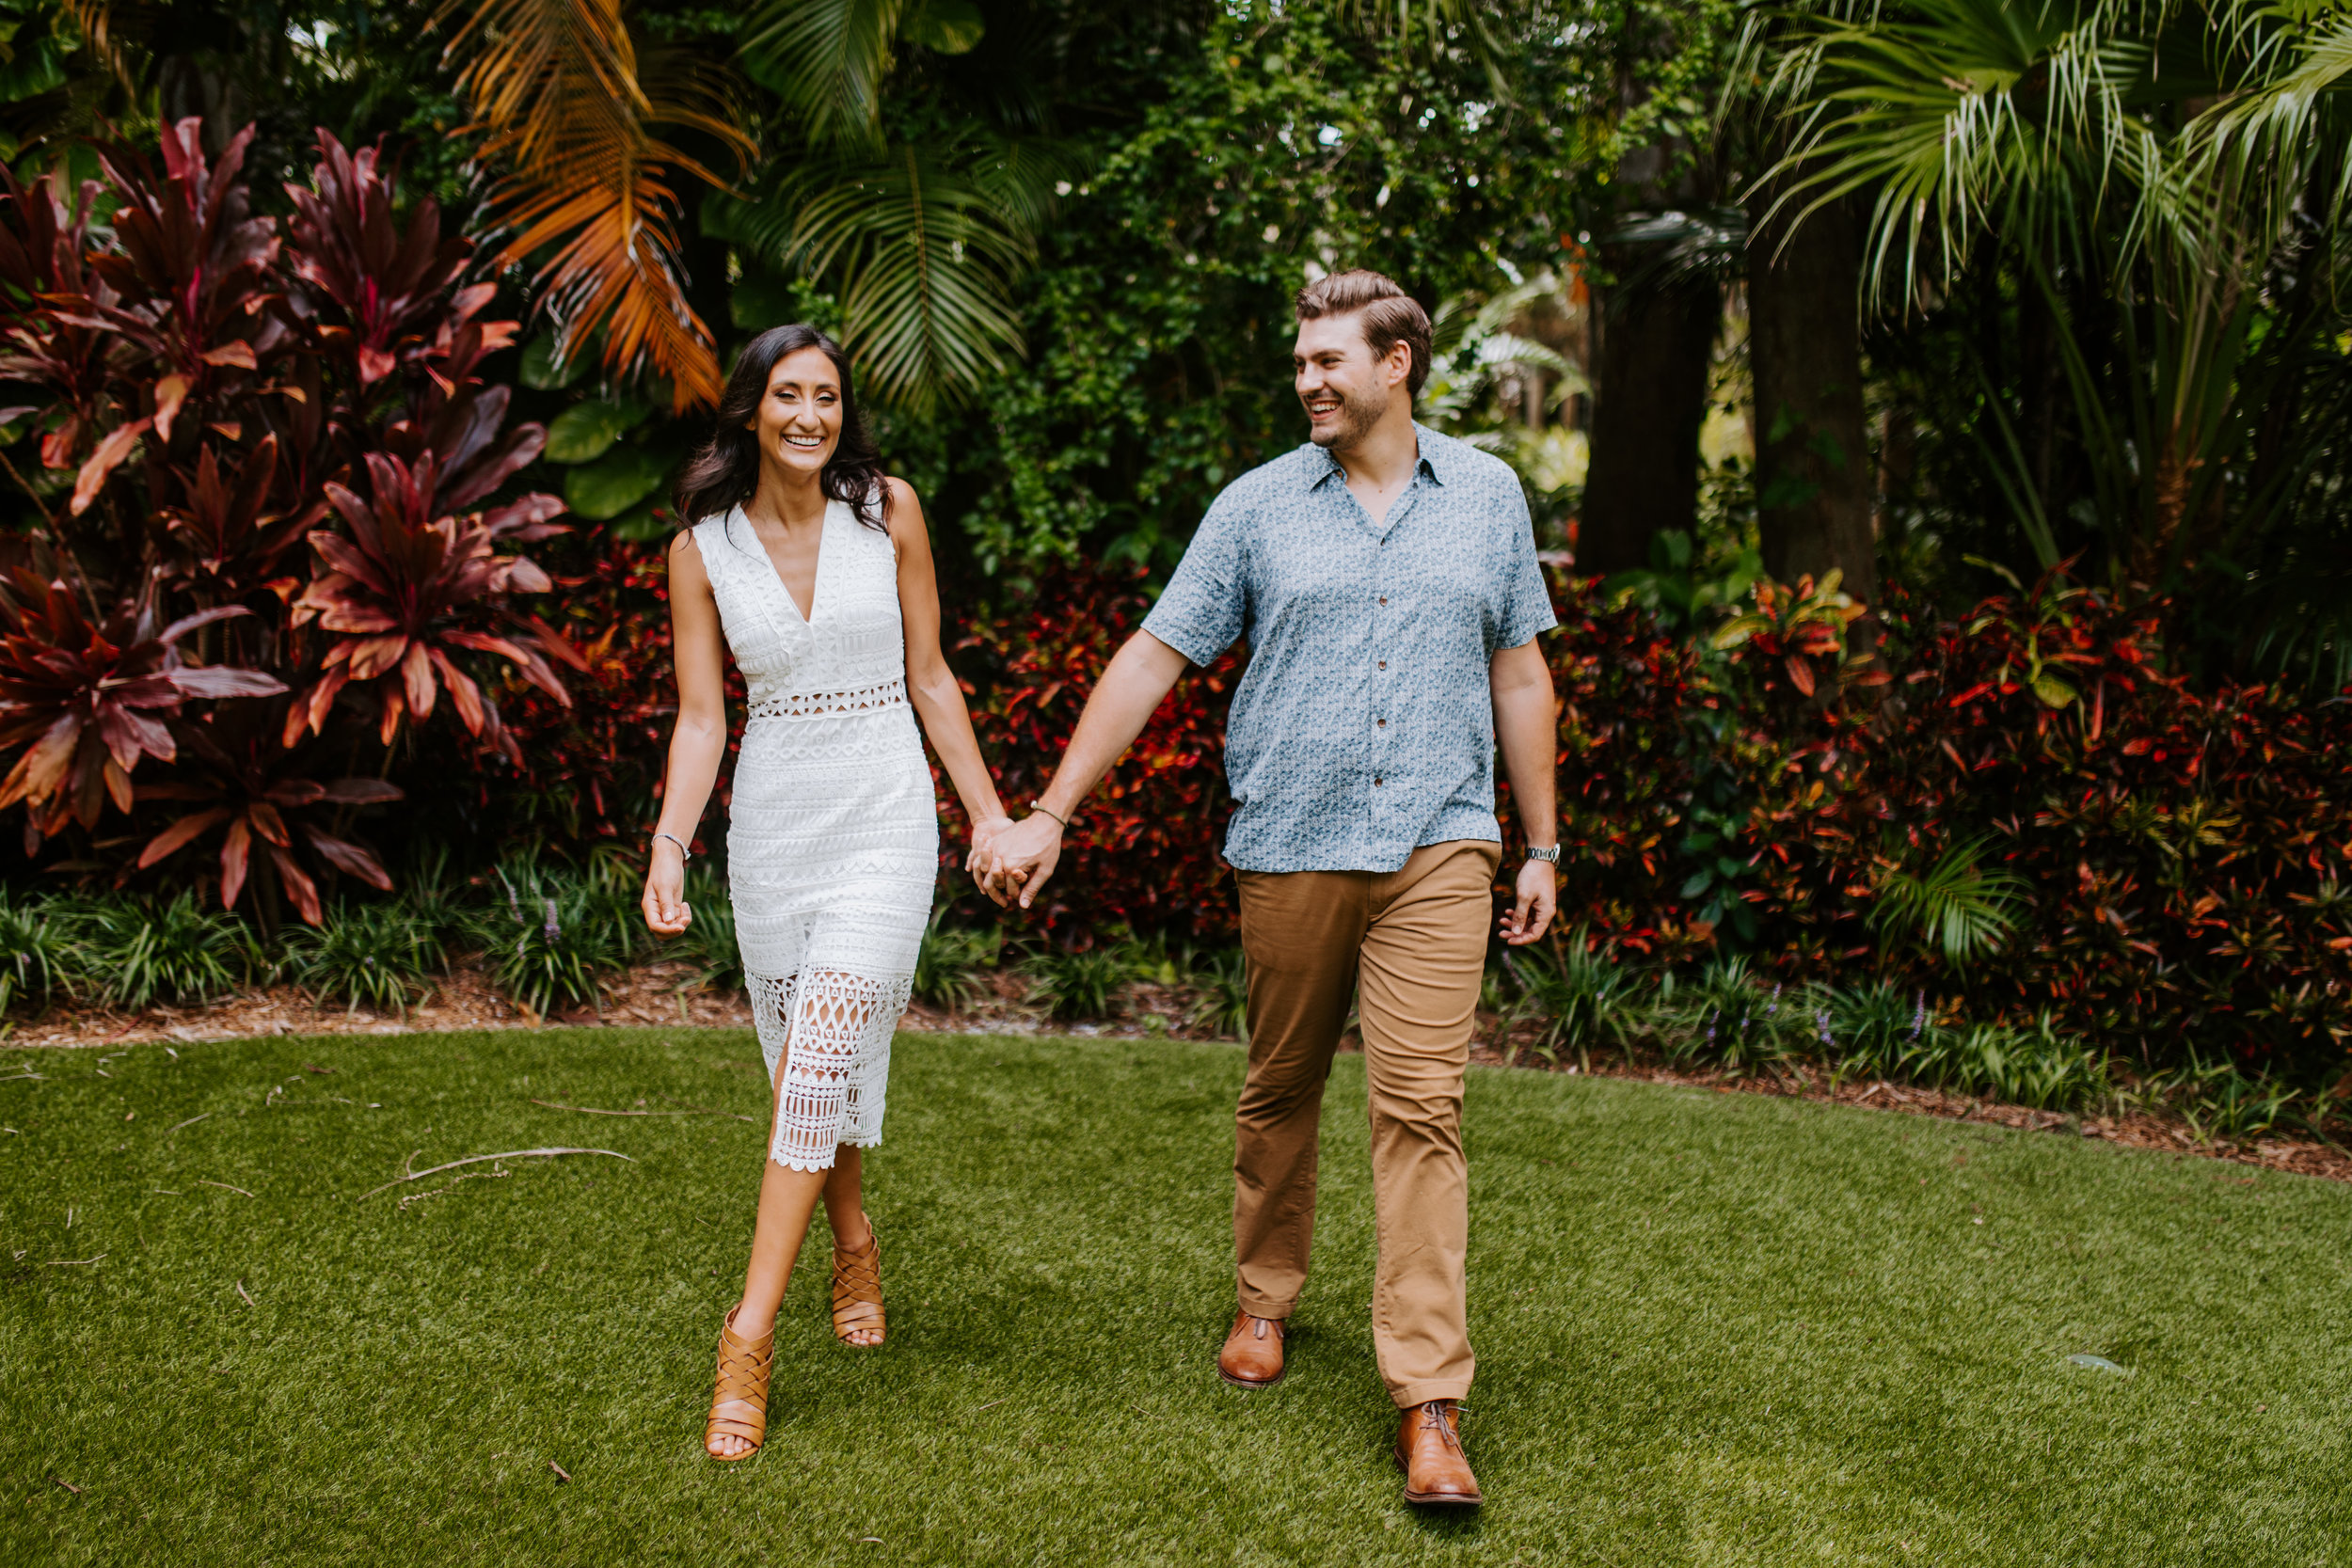 Sunken_Gardens-St_Pete-Allie_+_Eric-Engagement-Native_Expressions-57.jpg